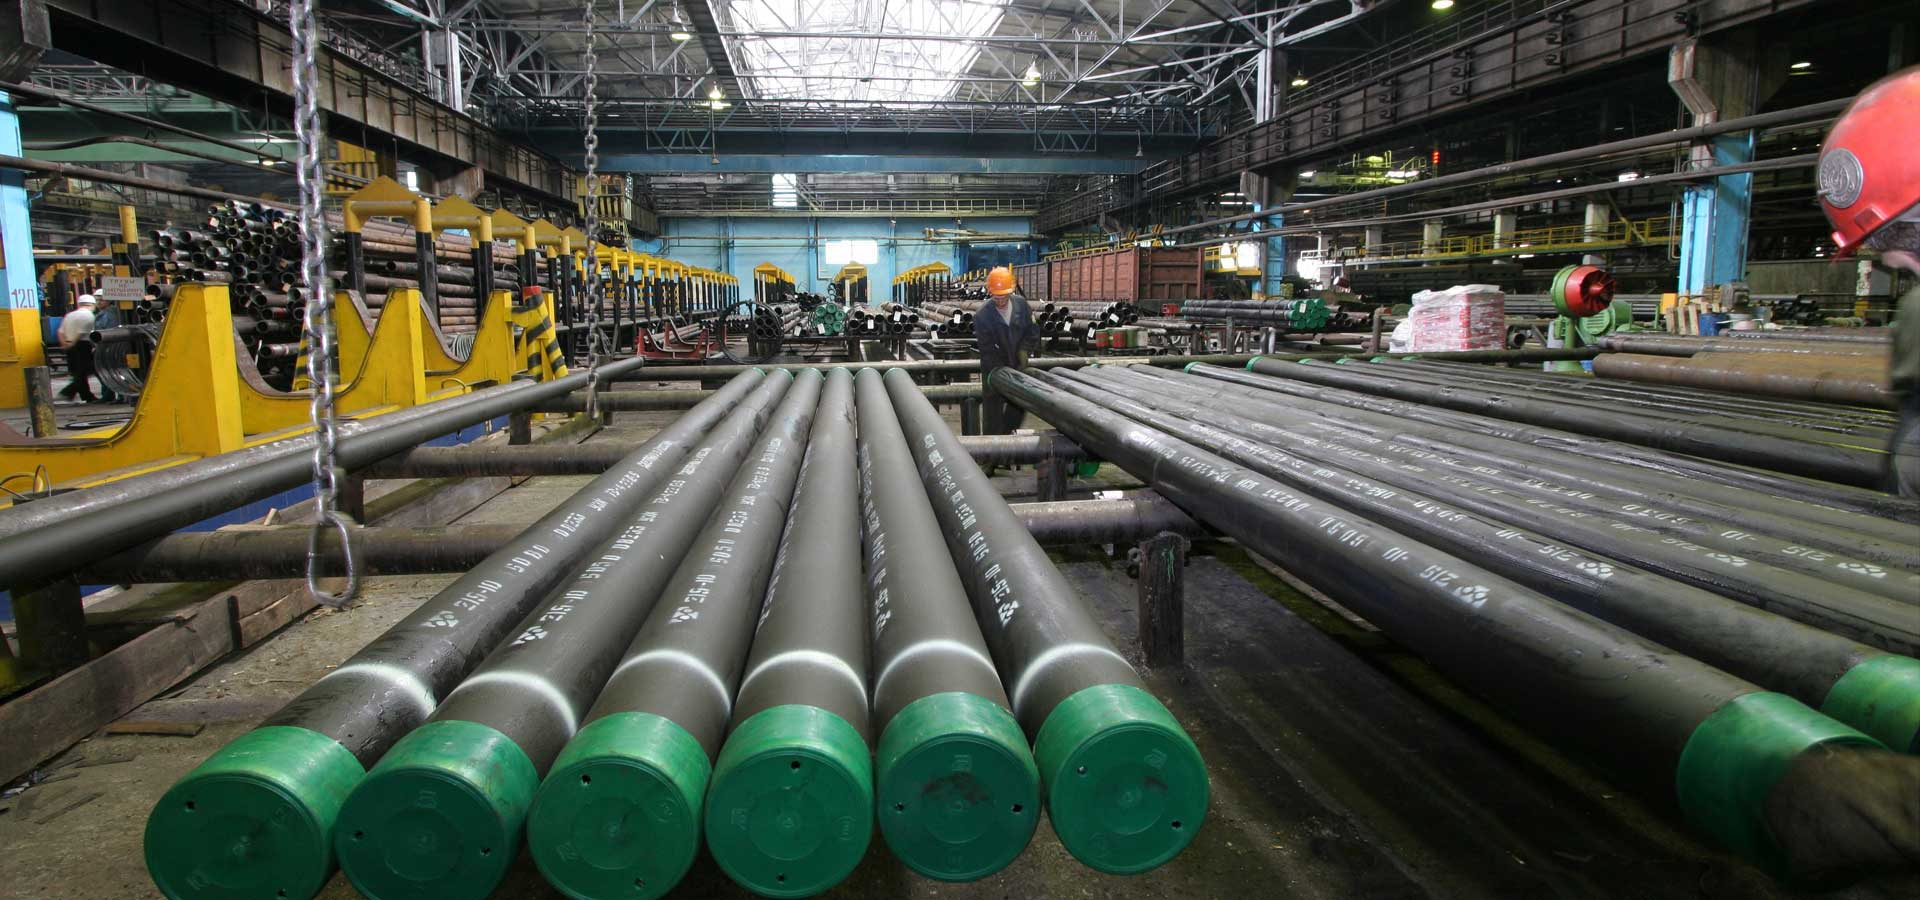 carbon steel pipe, seamless steel pipe, api 5l line pipe, welded steel pipe